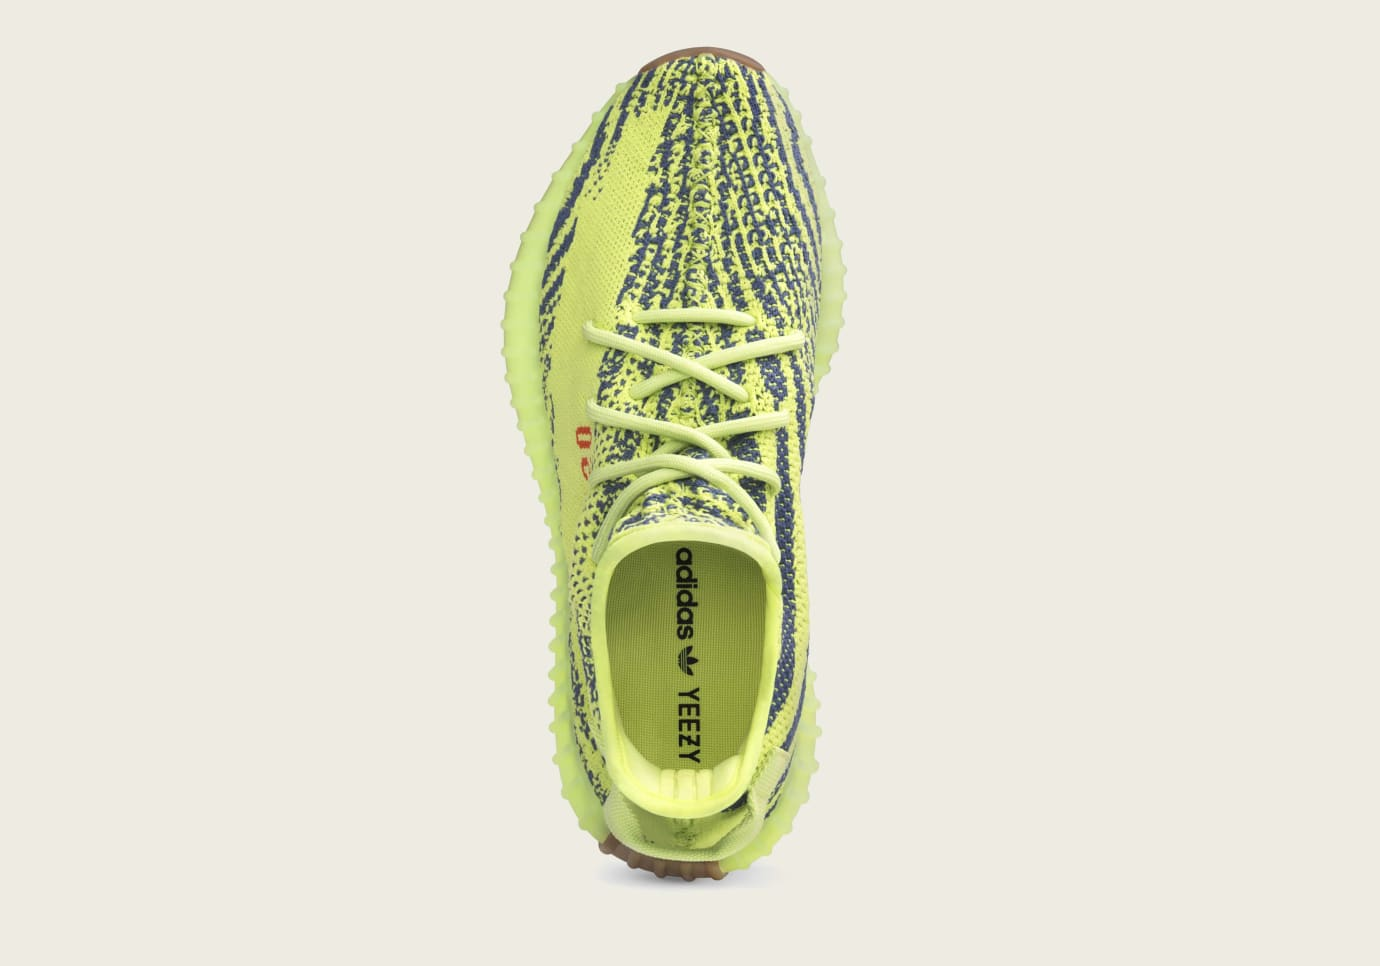 40b0e82cc00 Image via Yeezy Mafia · Adidas Yeezy Boost 350 V2  Semi Frozen Yellow   B37572 (Top)